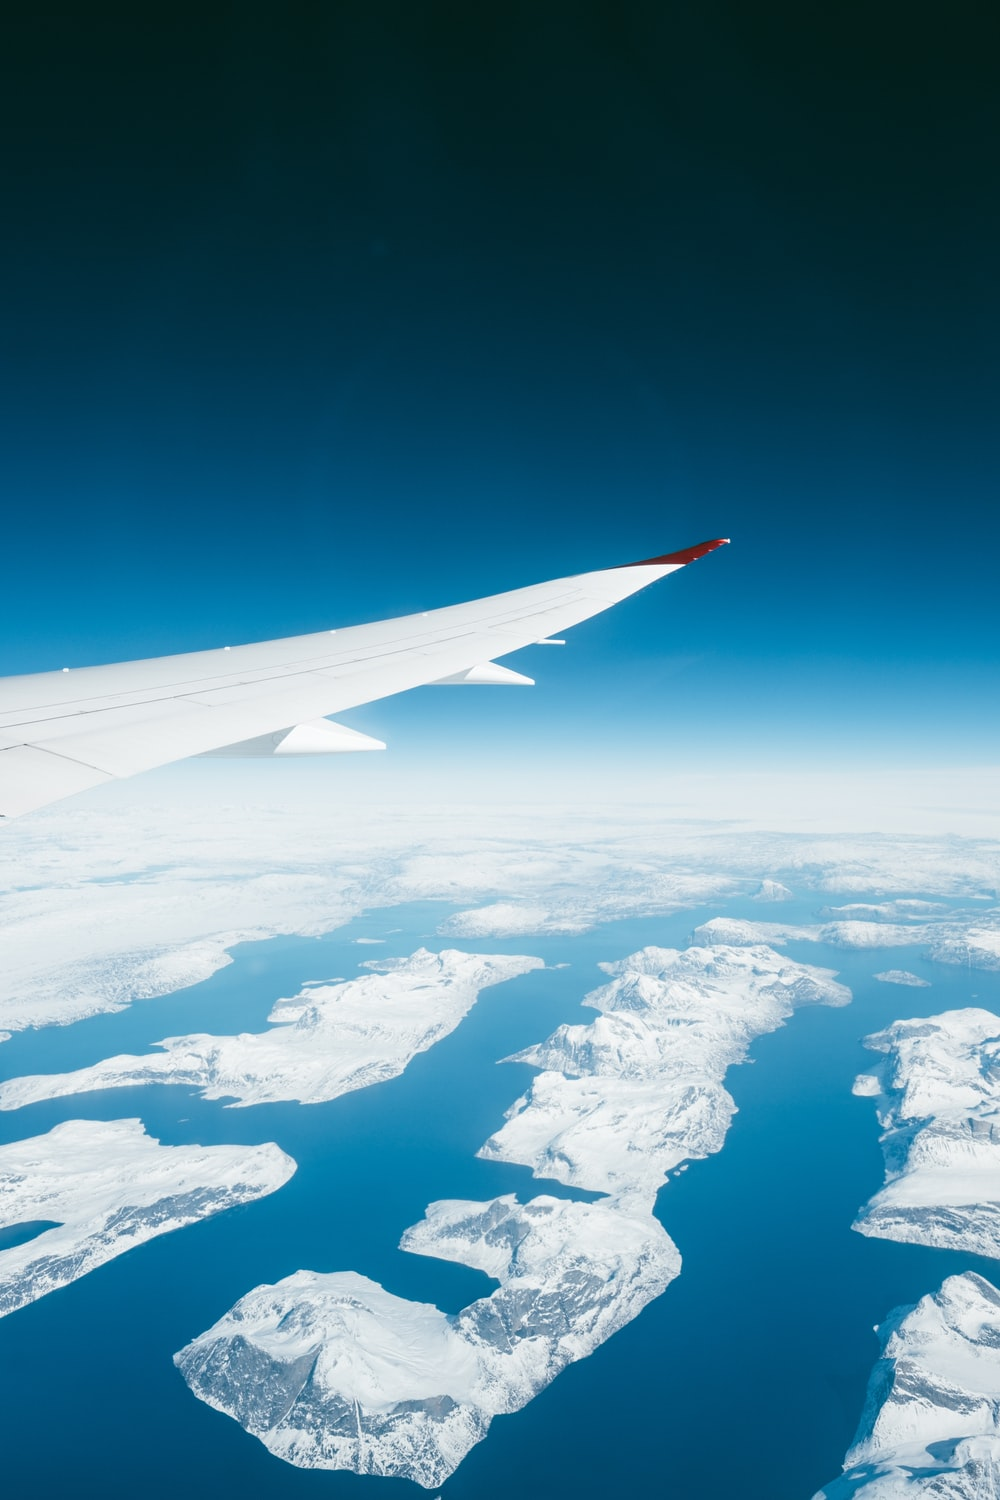 white airplane over rock mountains and blue sea